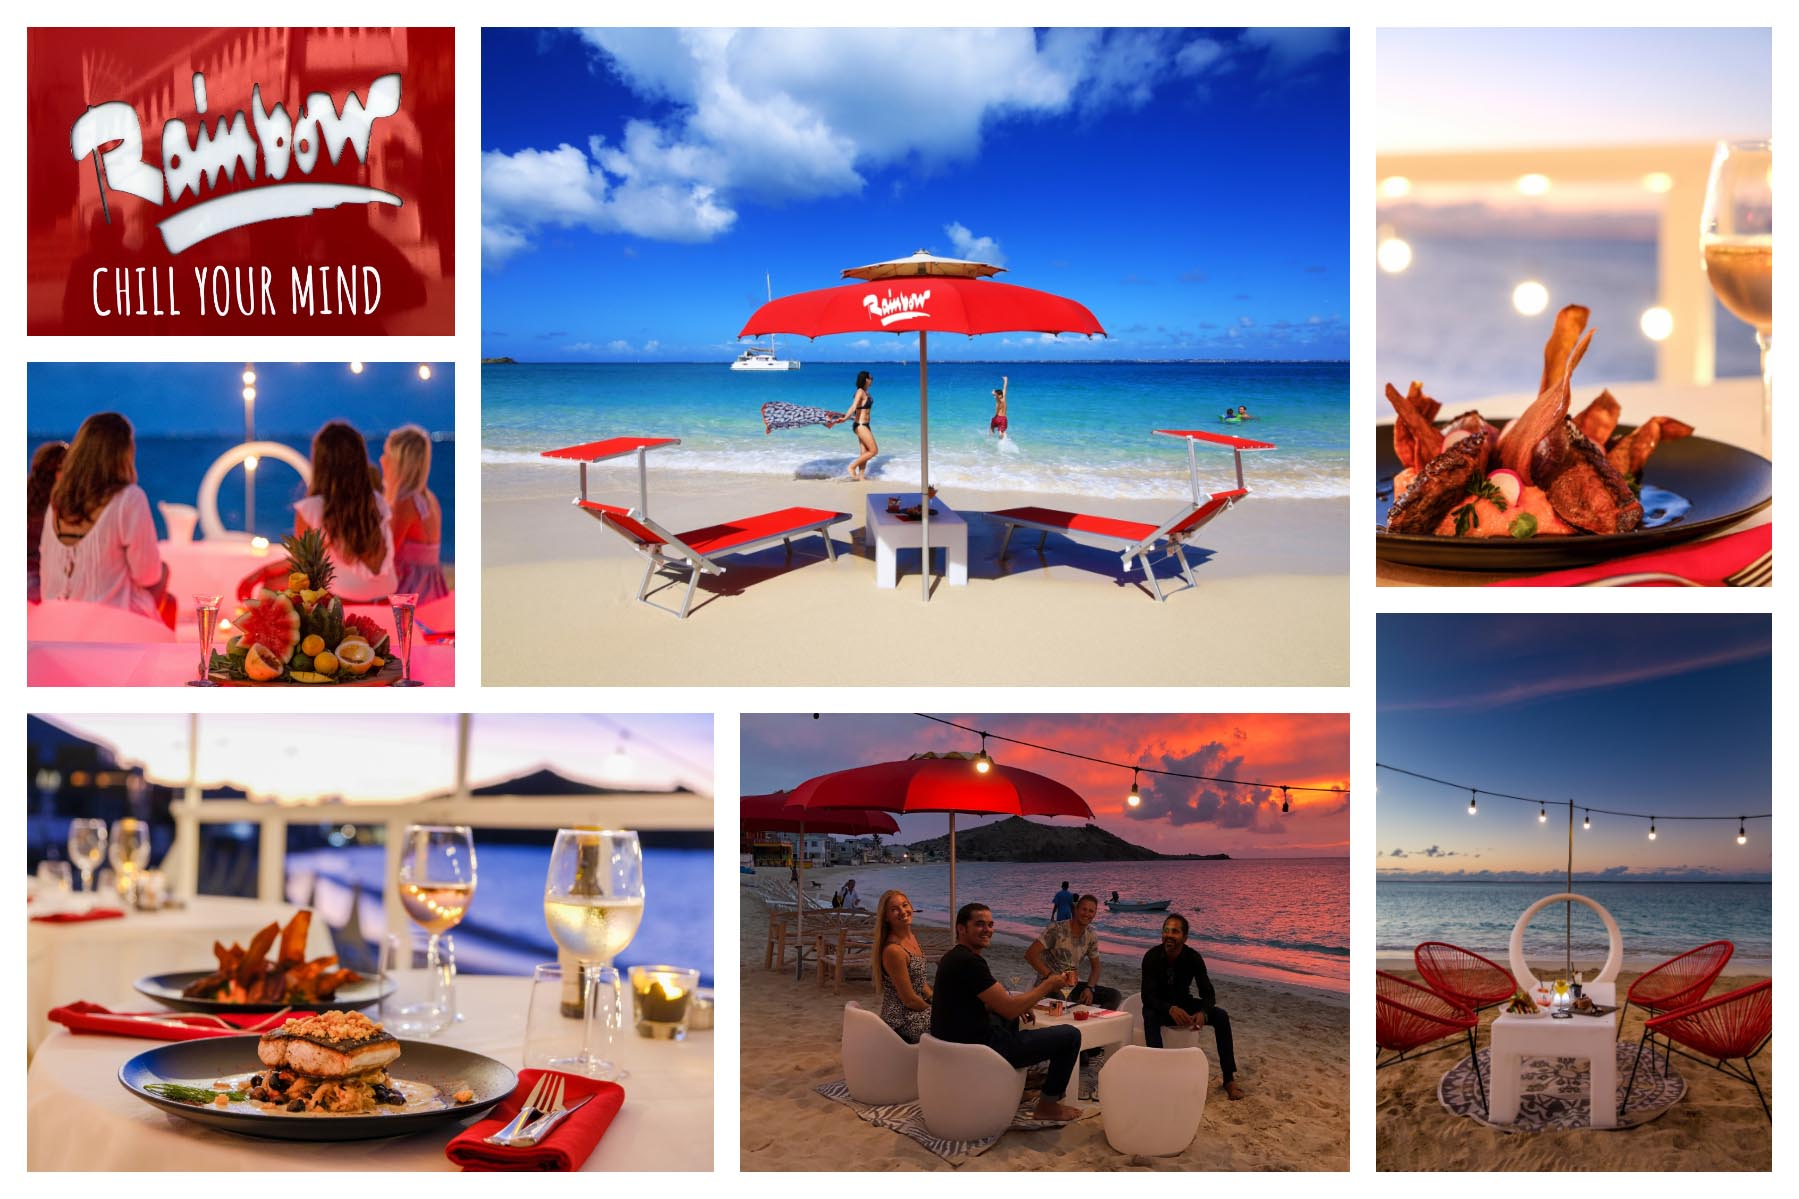 Rainbow Café Experience - Grand Case Beach, St. Martin - Chic Beach Cafe, Restaurant, Lunch, Dinner, Bar, Lounge, Bueach chairs - Great for day and Night!